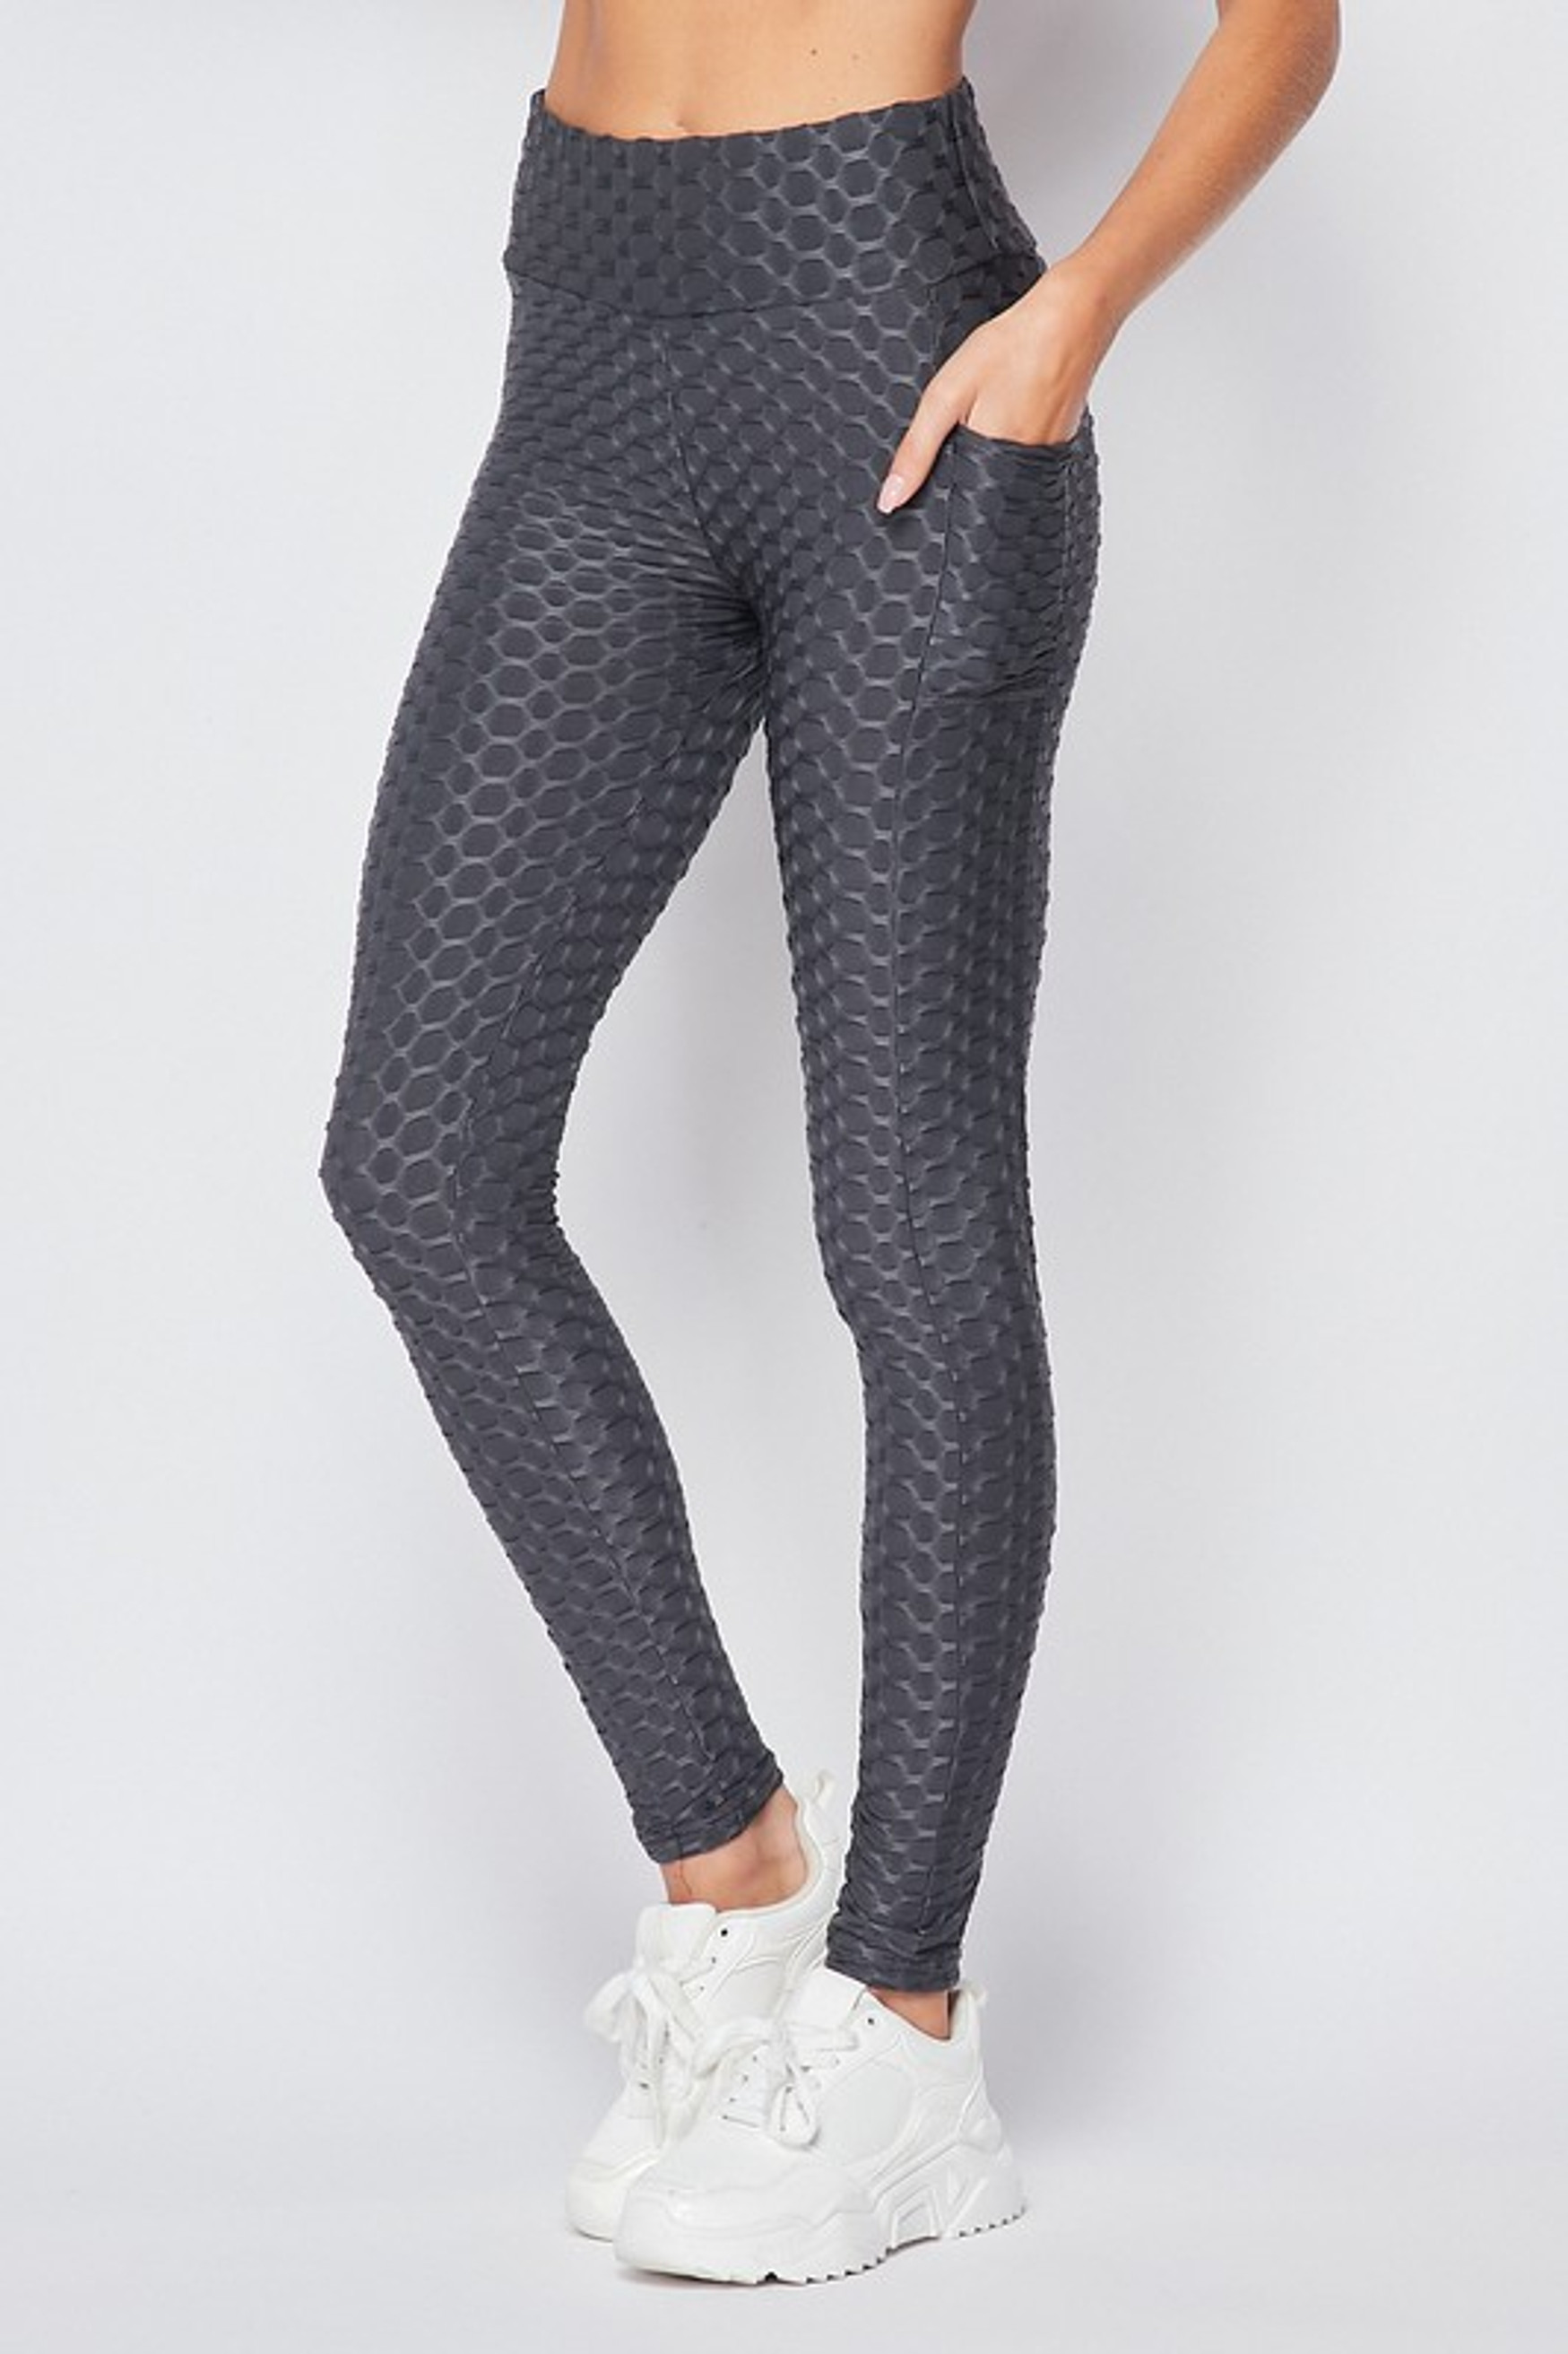 45 degree  view of Charcoal Scrunch Butt Popcorn Textured High Waisted Leggings with Pockets - Zinati (W&J)